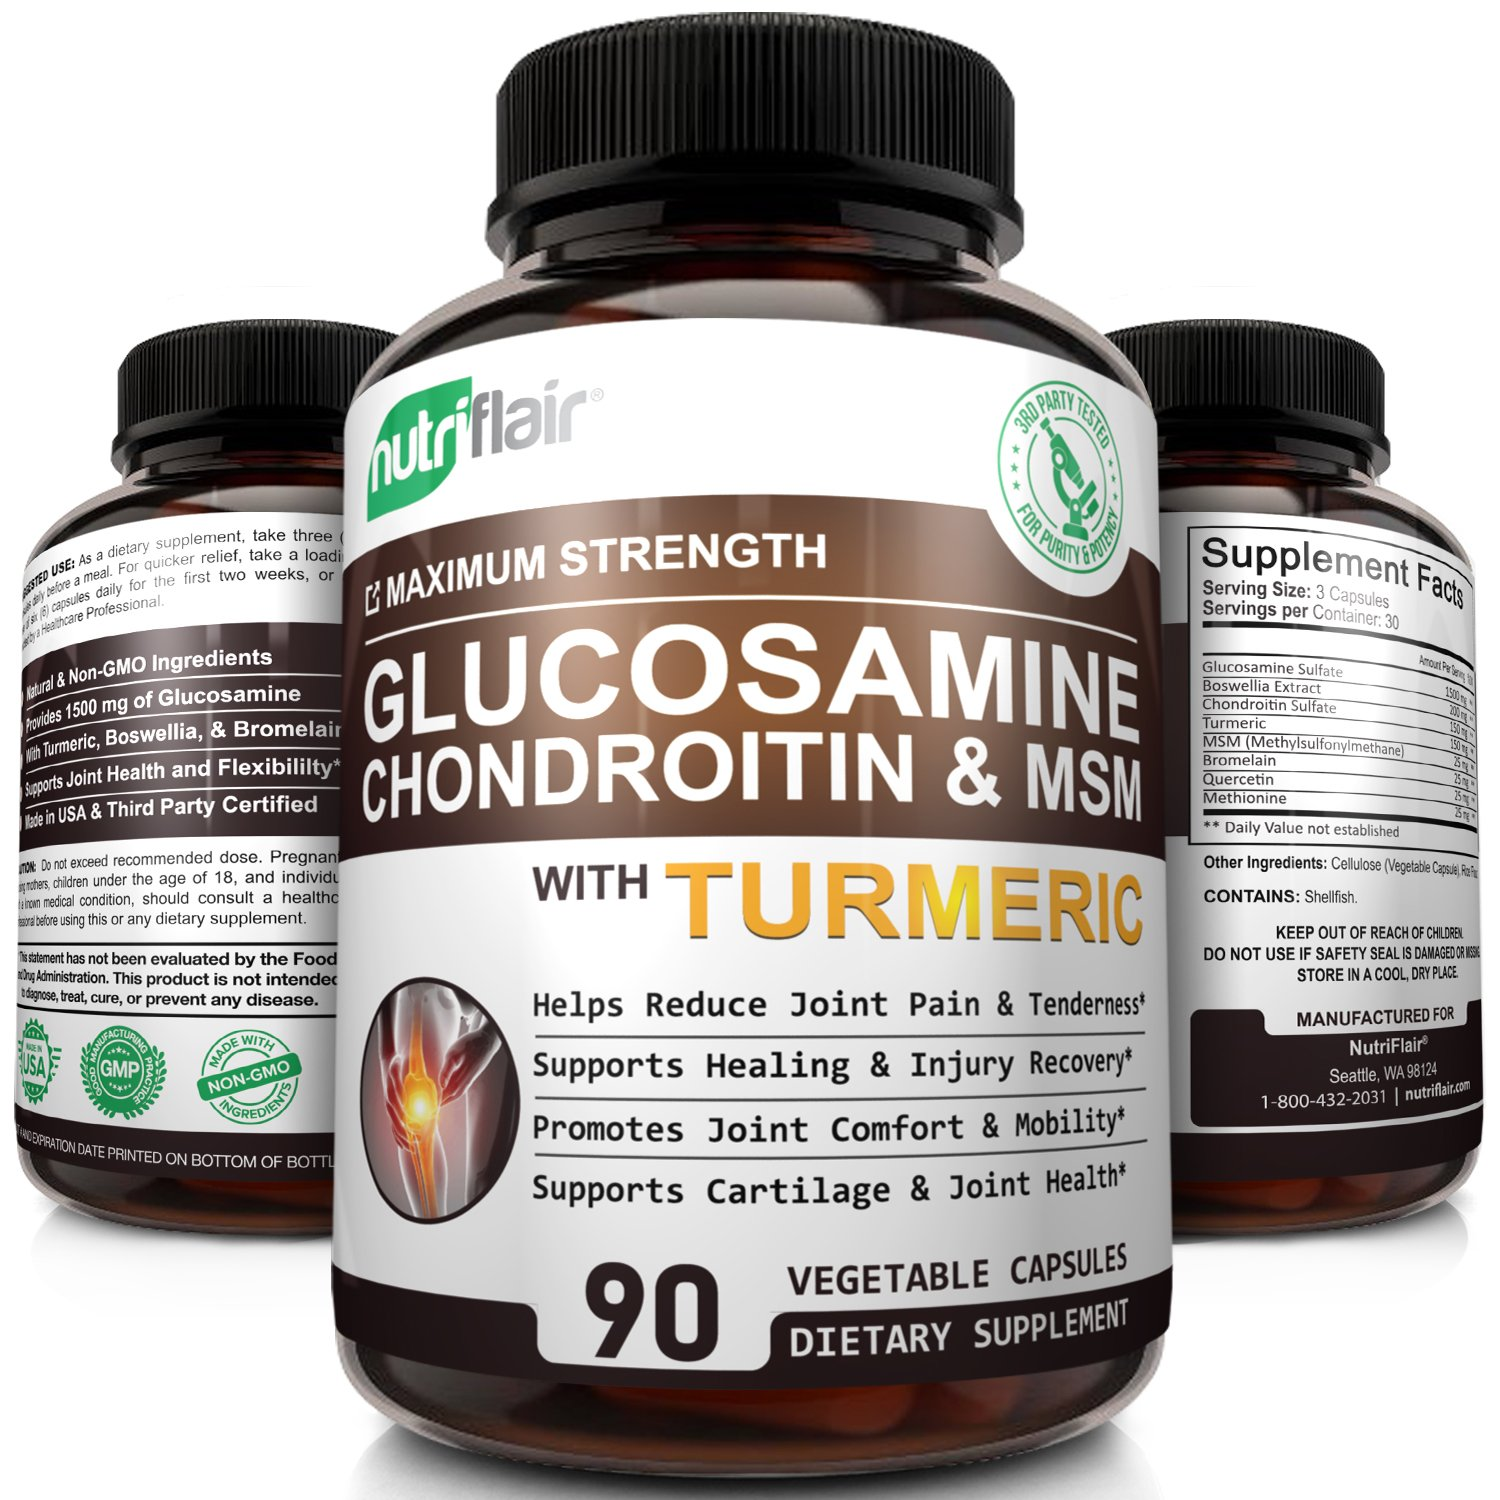 NutriFlair Glucosamine Chondroitin Turmeric MSM Boswellia - Joint Pain Relief Supplement - Natural & Non-GMO - Anti-Inflammatory & Antioxidant Pills - Supports Back, Knees, Hands, Joints, Cartilage